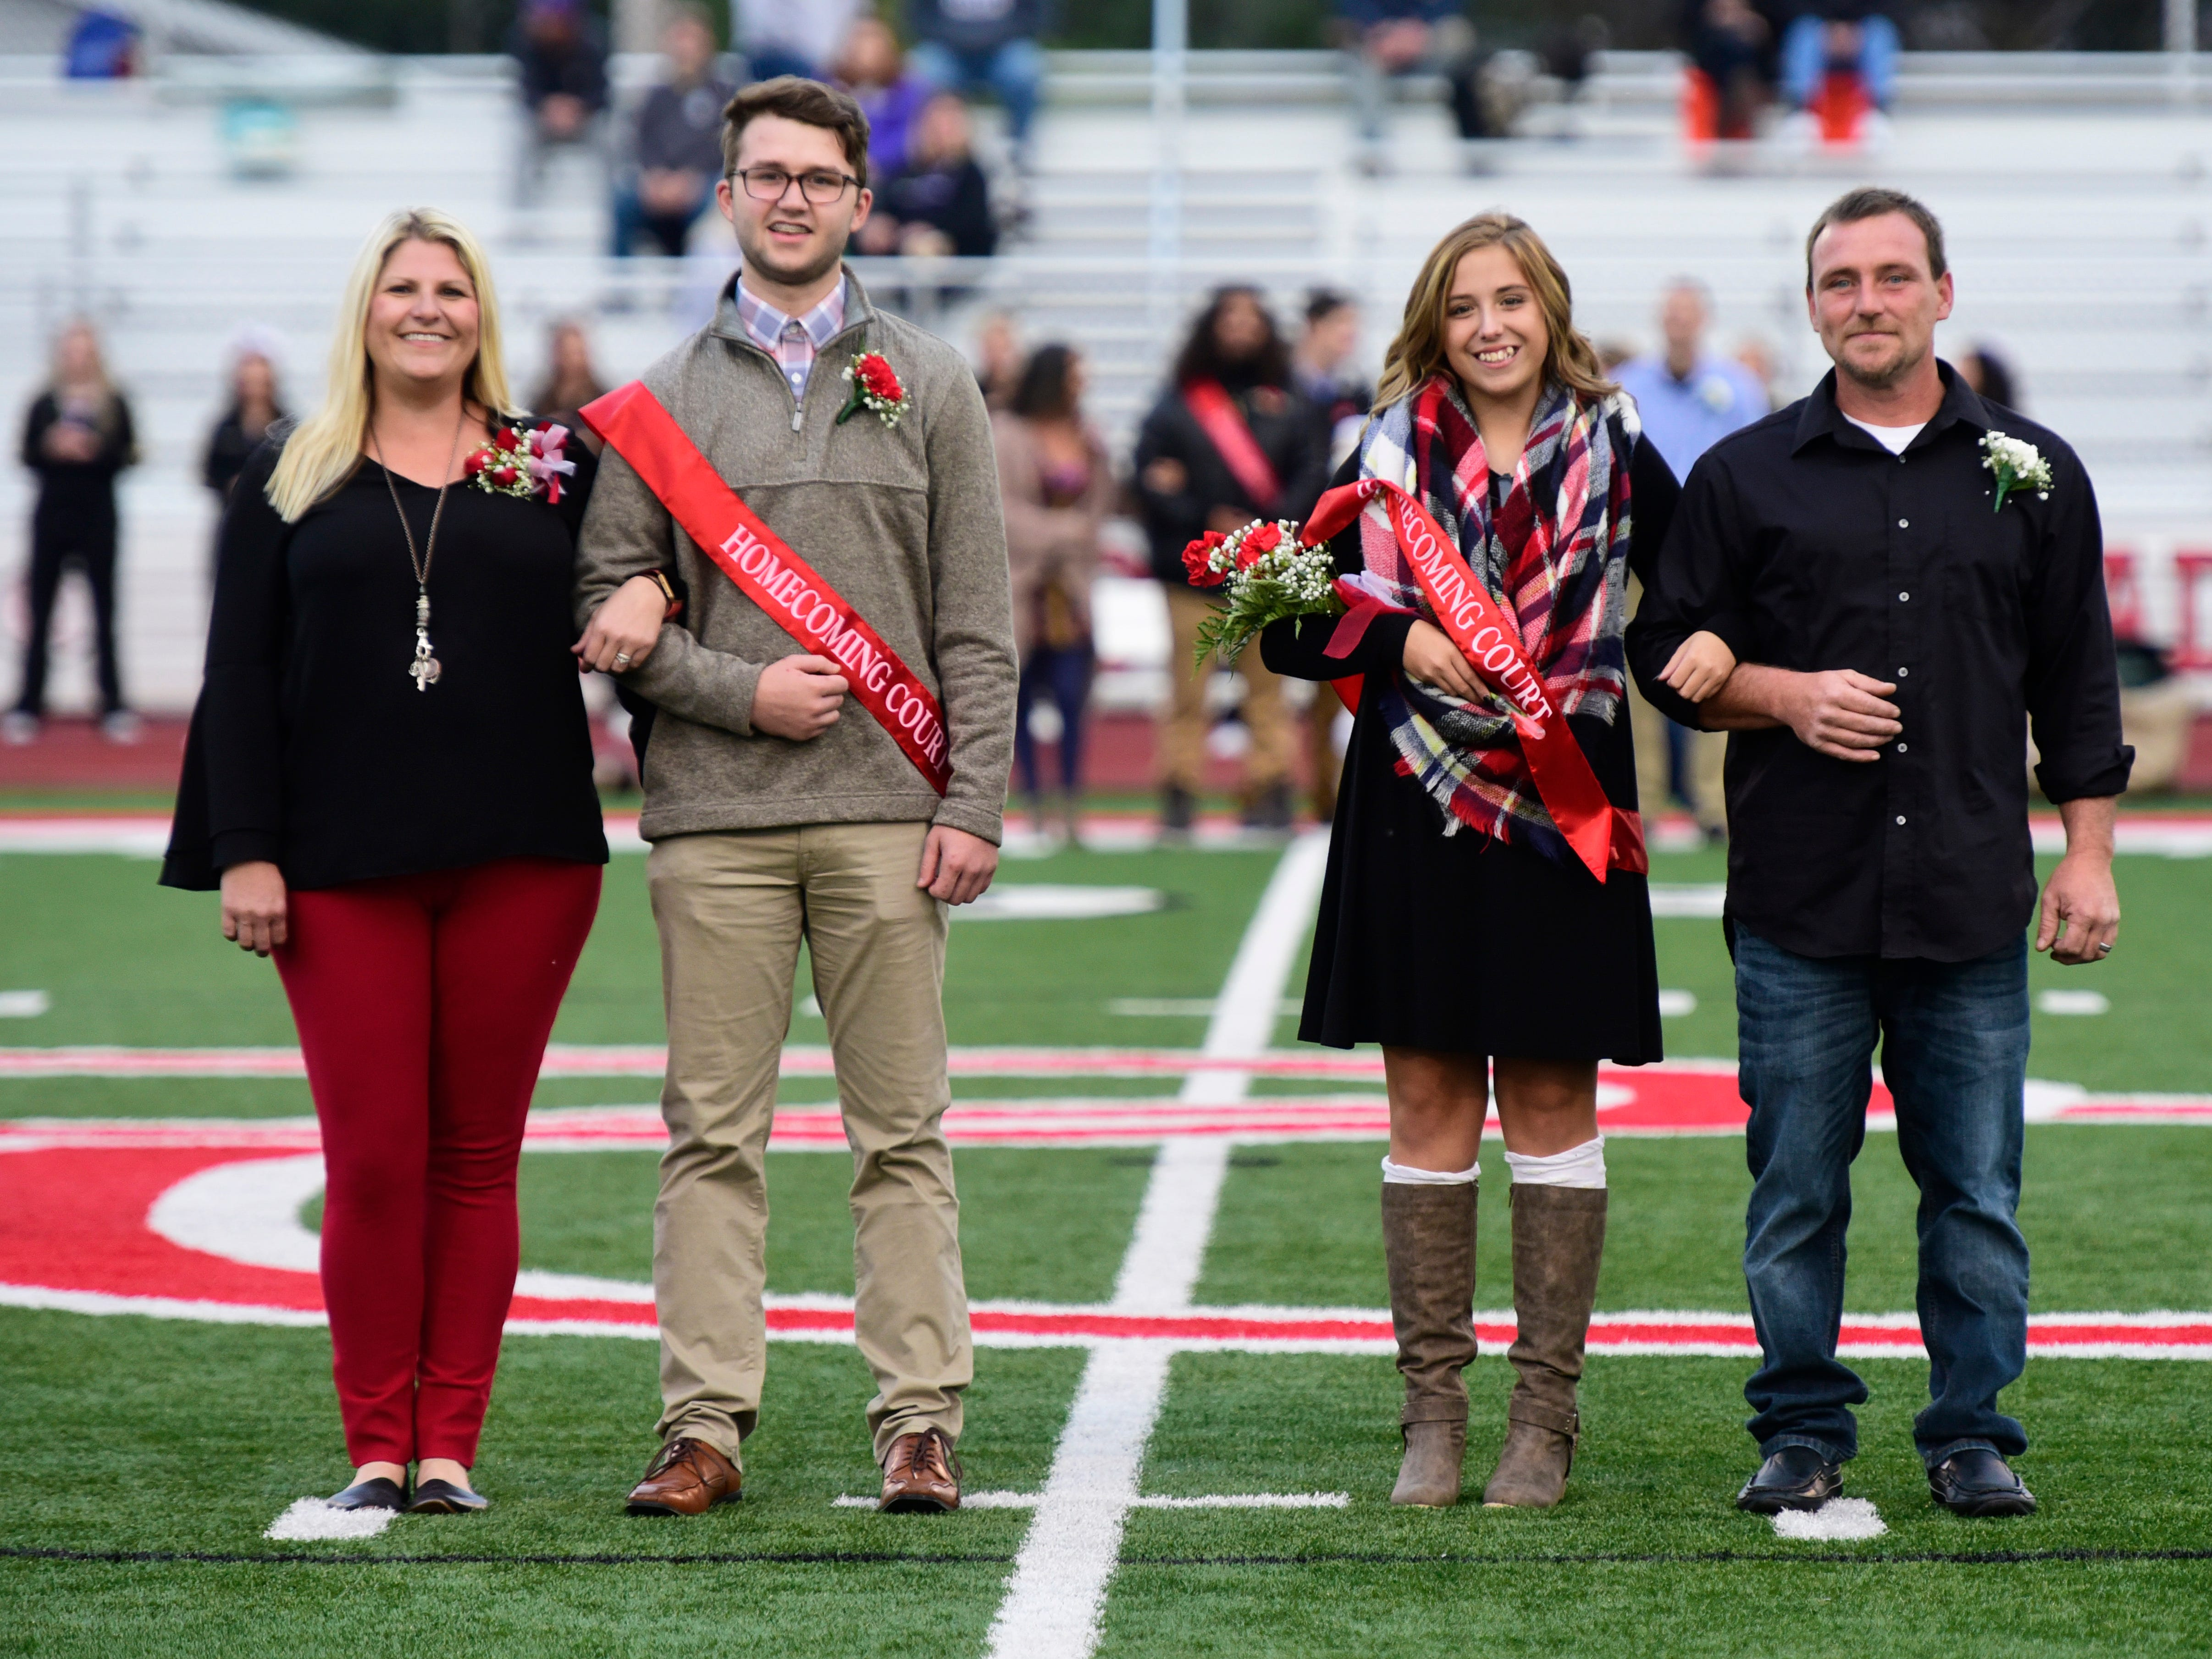 Port Clinton High School 2018 senior homecoming attendant Dylan Johnson, left, and queen Stacey Bragg.